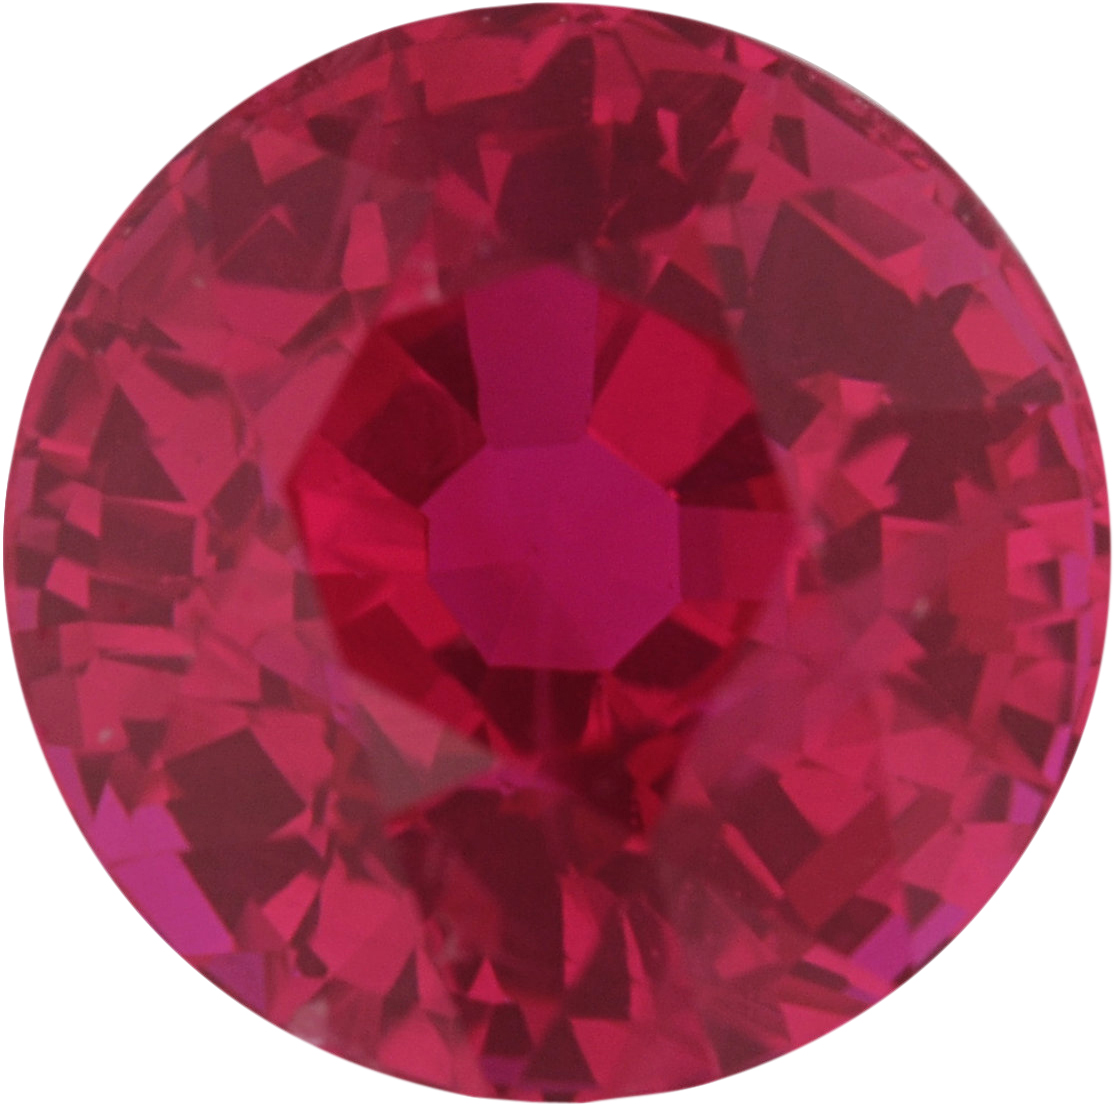 5.88 mm, Ruby Loose Gemstone in Round Cut, 1.16 carats